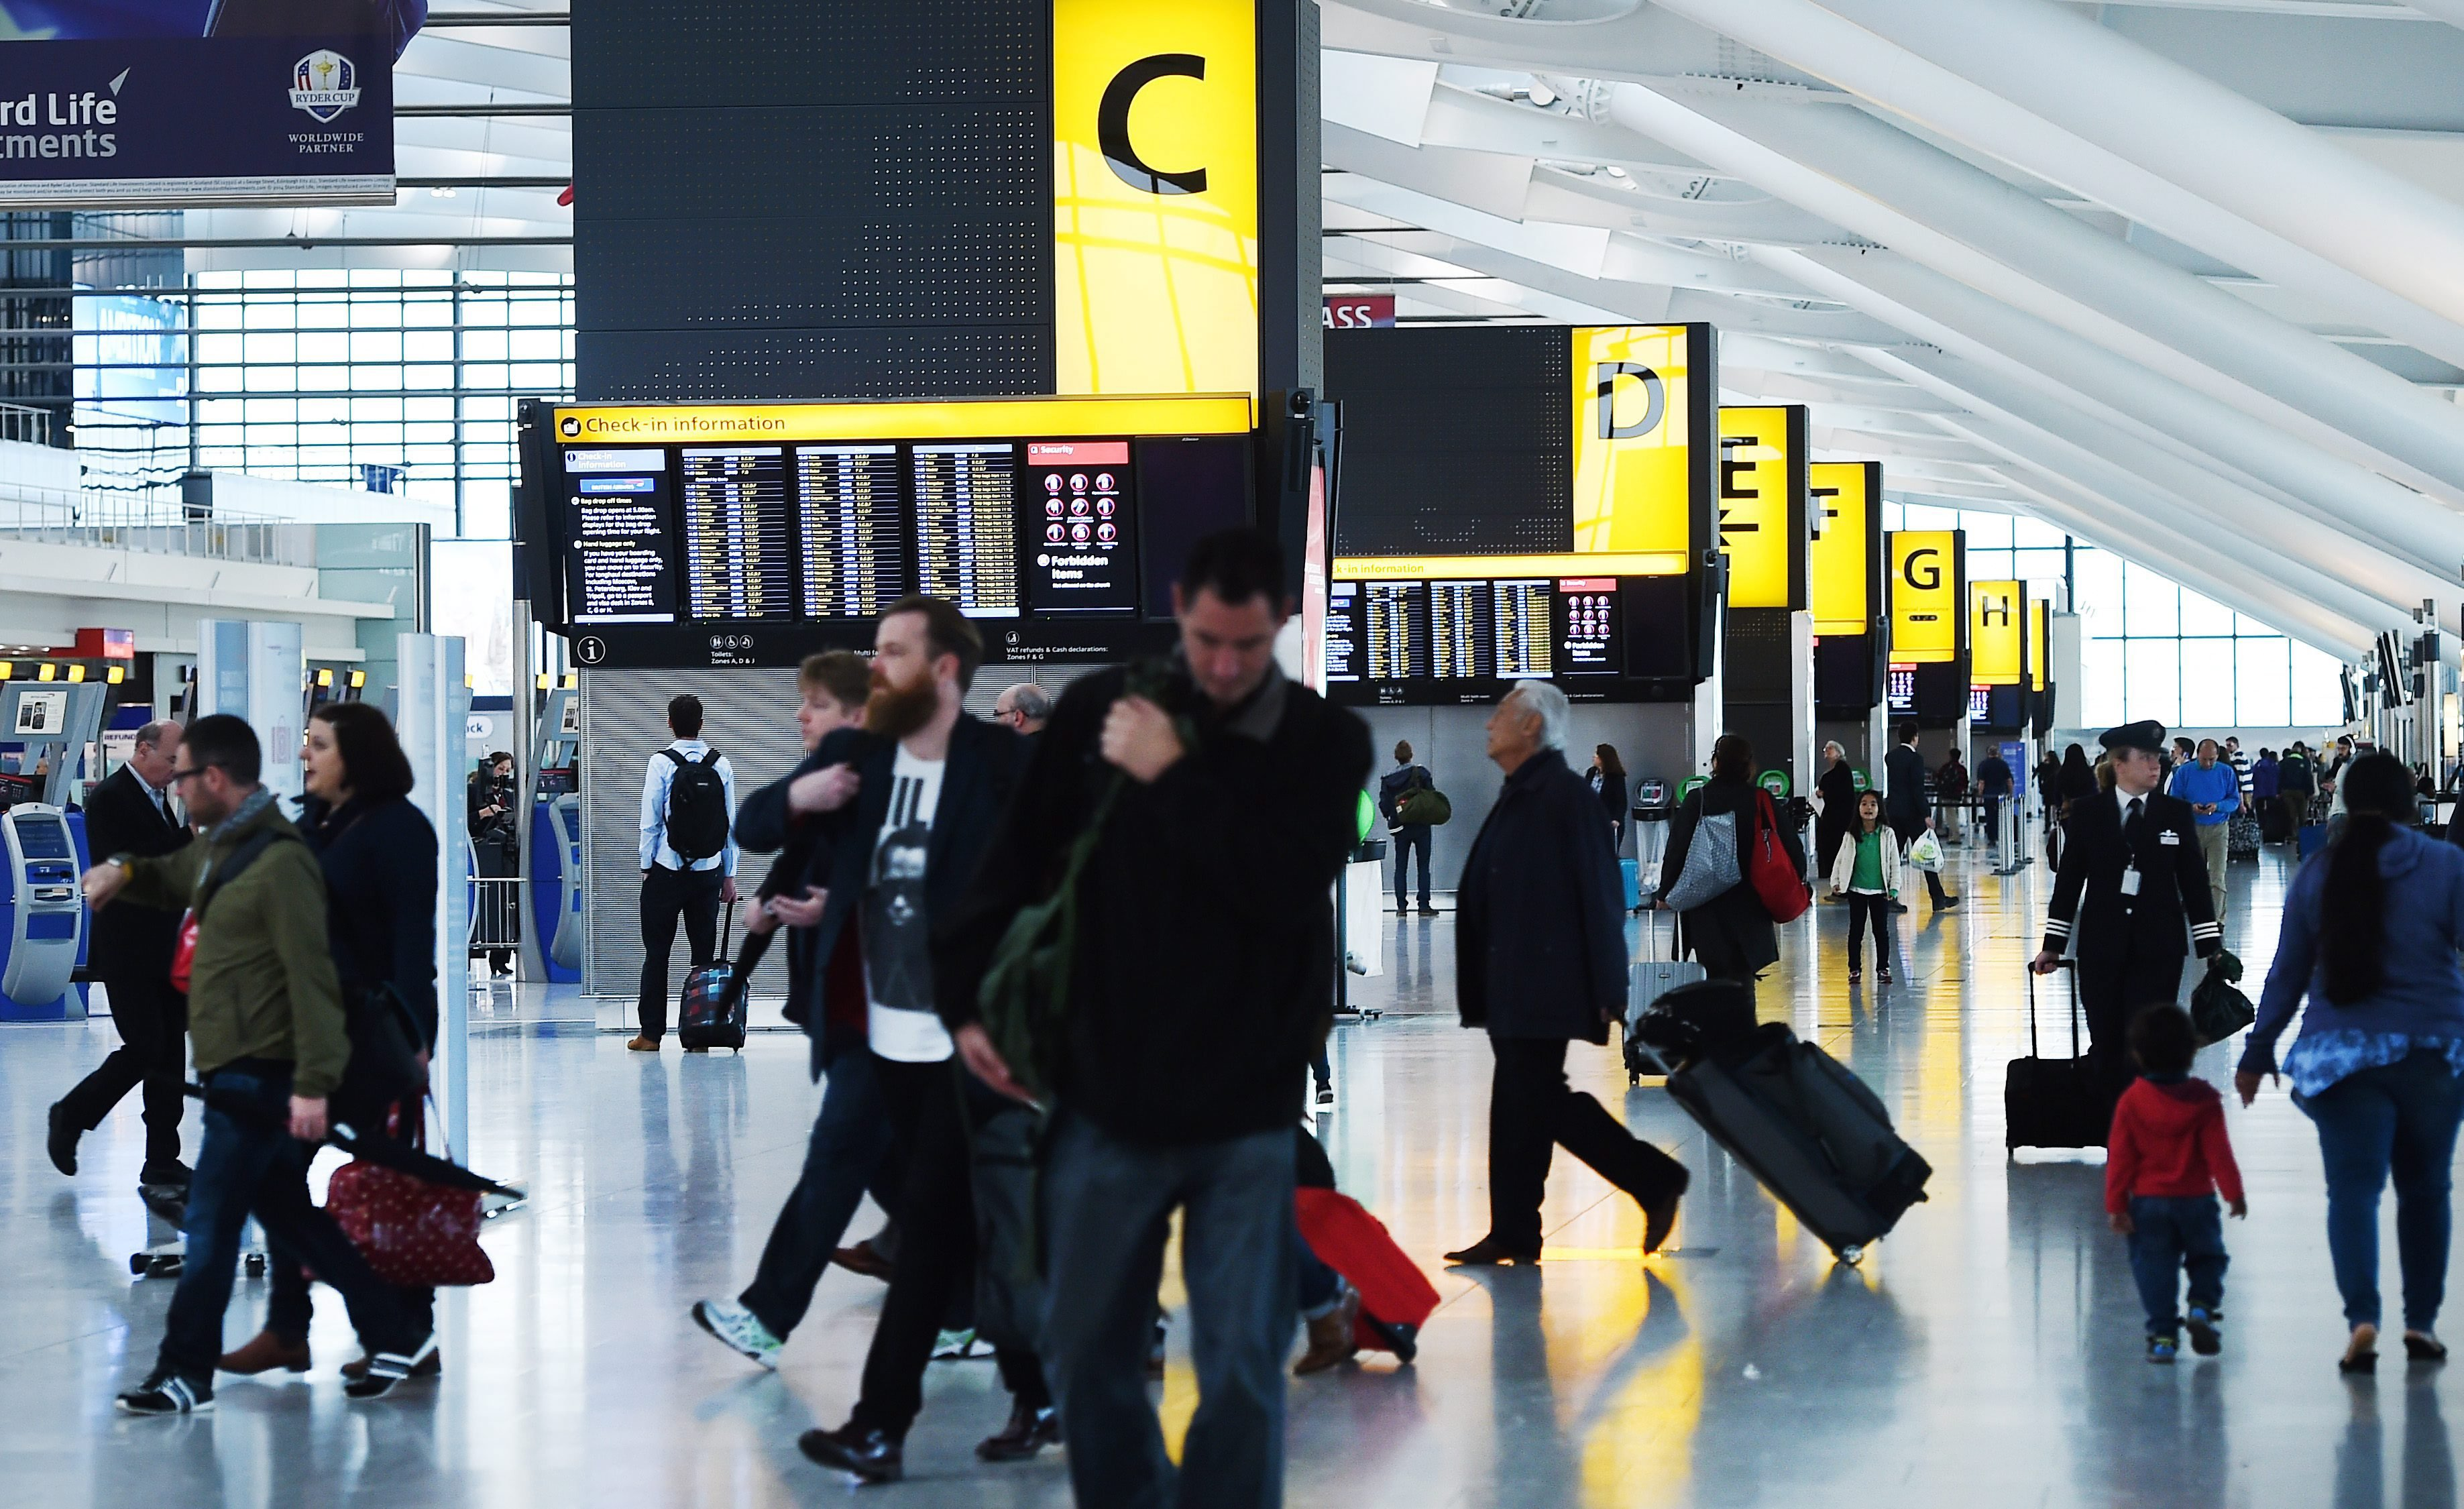 Passengers walk at Heathrow Airport in London on Oct. 14, 2014.